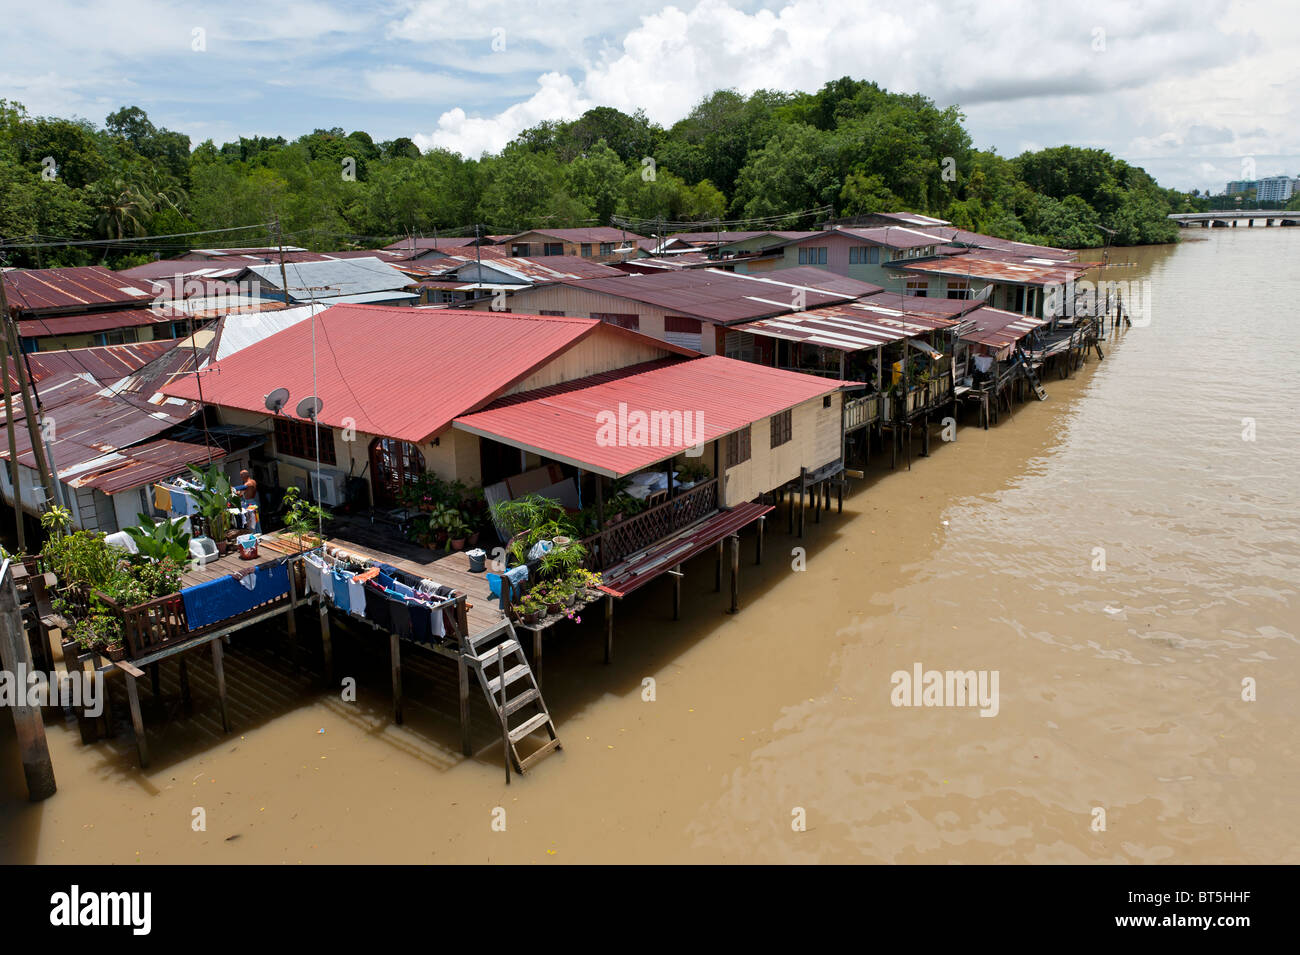 Kampong Ayer Water Village in Bandar Seri Begawan, Brunei - Stock Image